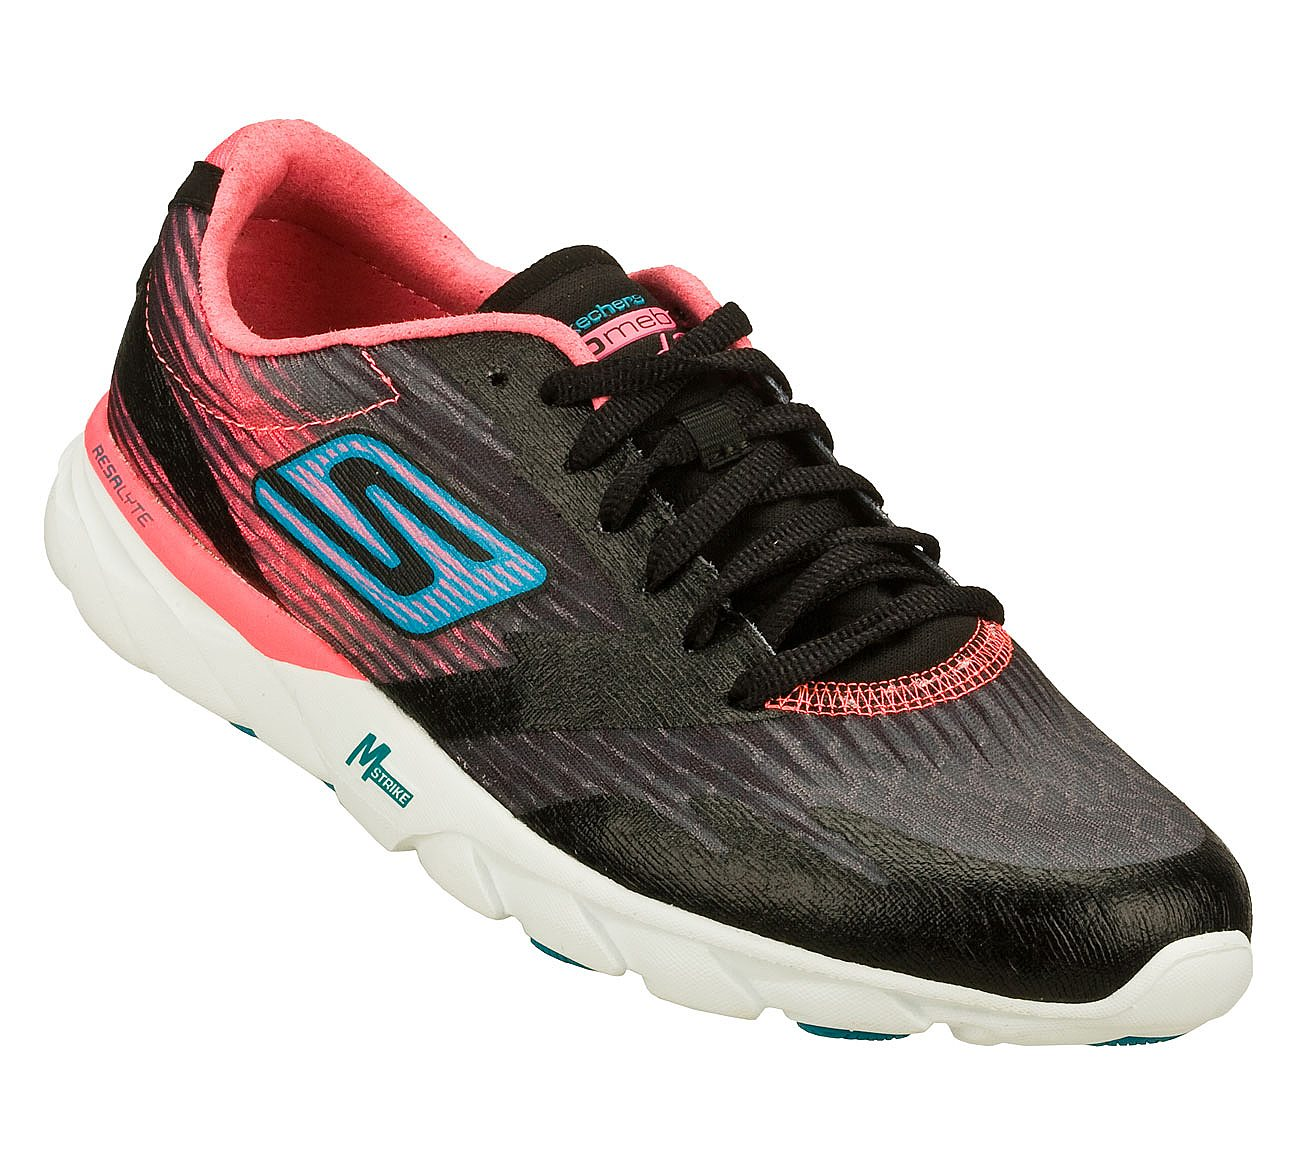 Buy SKECHERS Skechers GOmeb Speed 2 Shoes